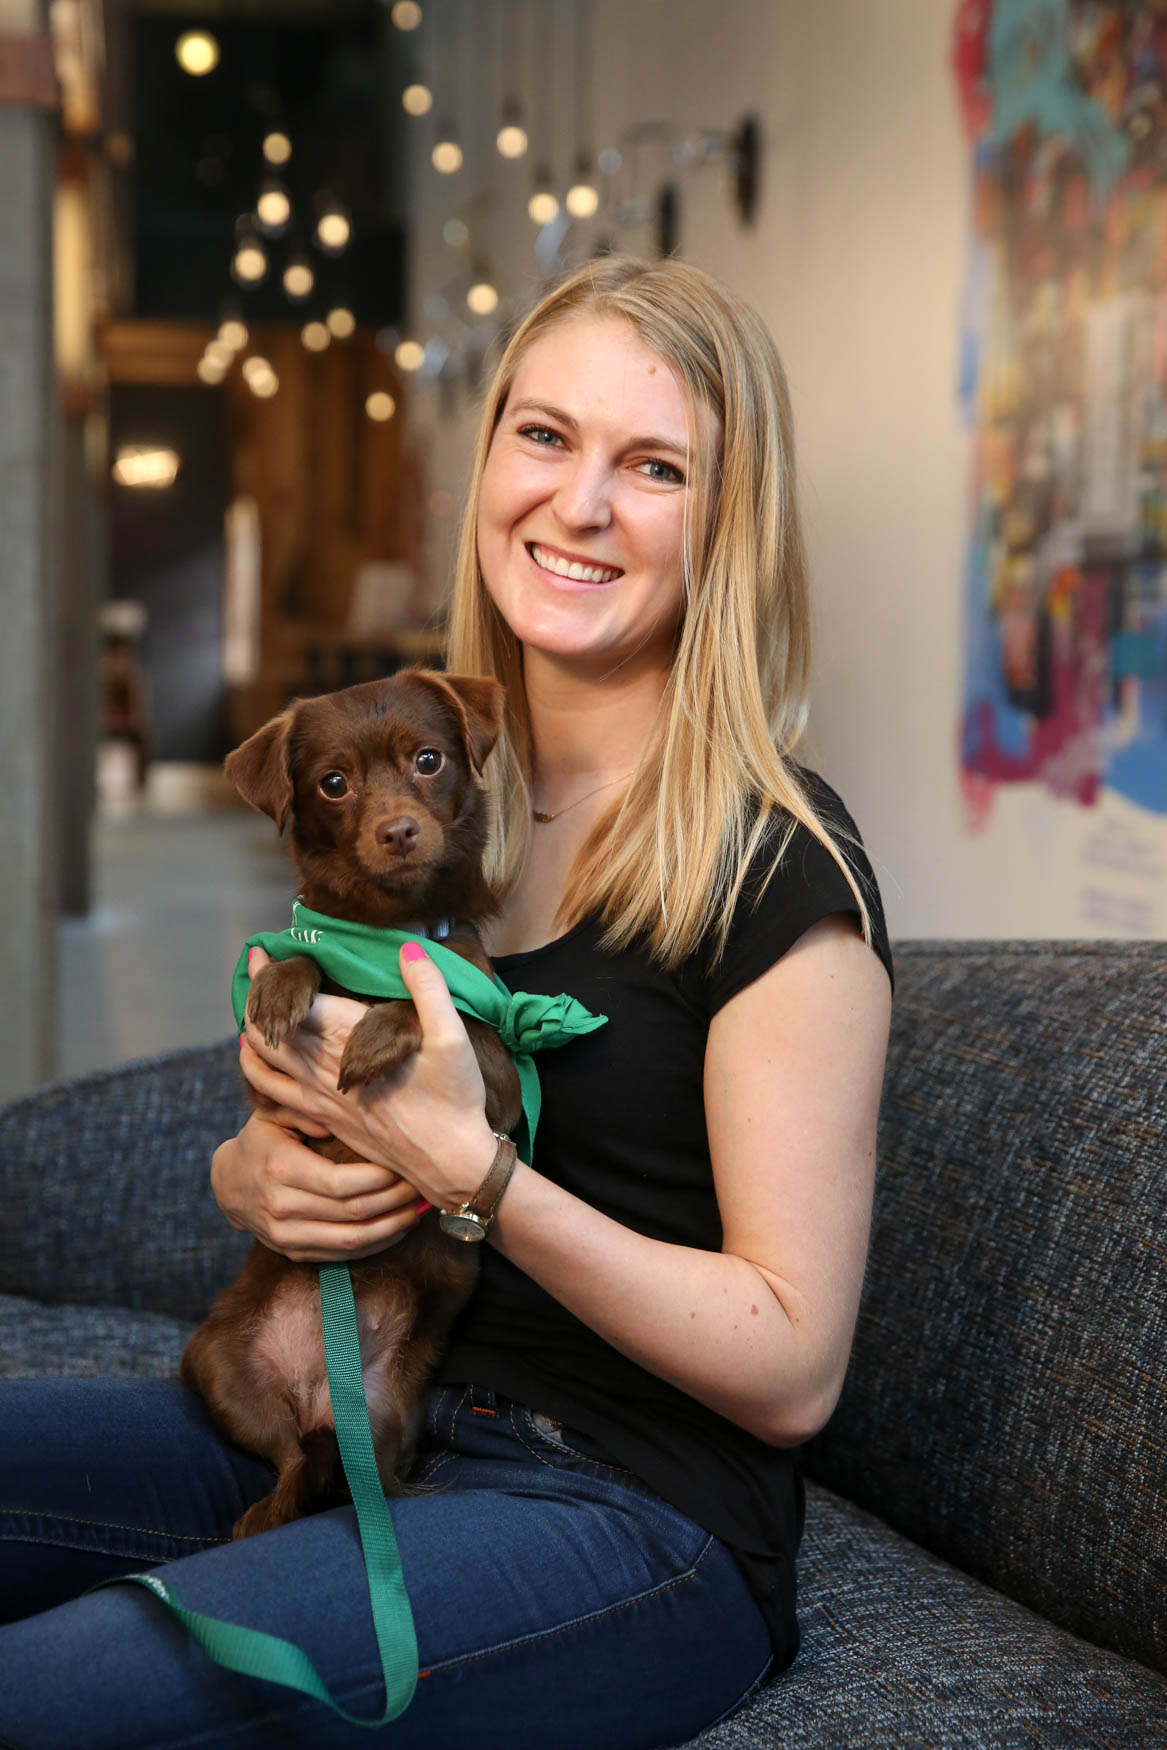 Meet Pistachio and Cami, a 3-year-old Dachshund mix and a 27-year-old human respectively. Photo location: Moxy Washington, D.C. Downtown (Image: Amanda Andrade-Rhoades/ DC Refined)